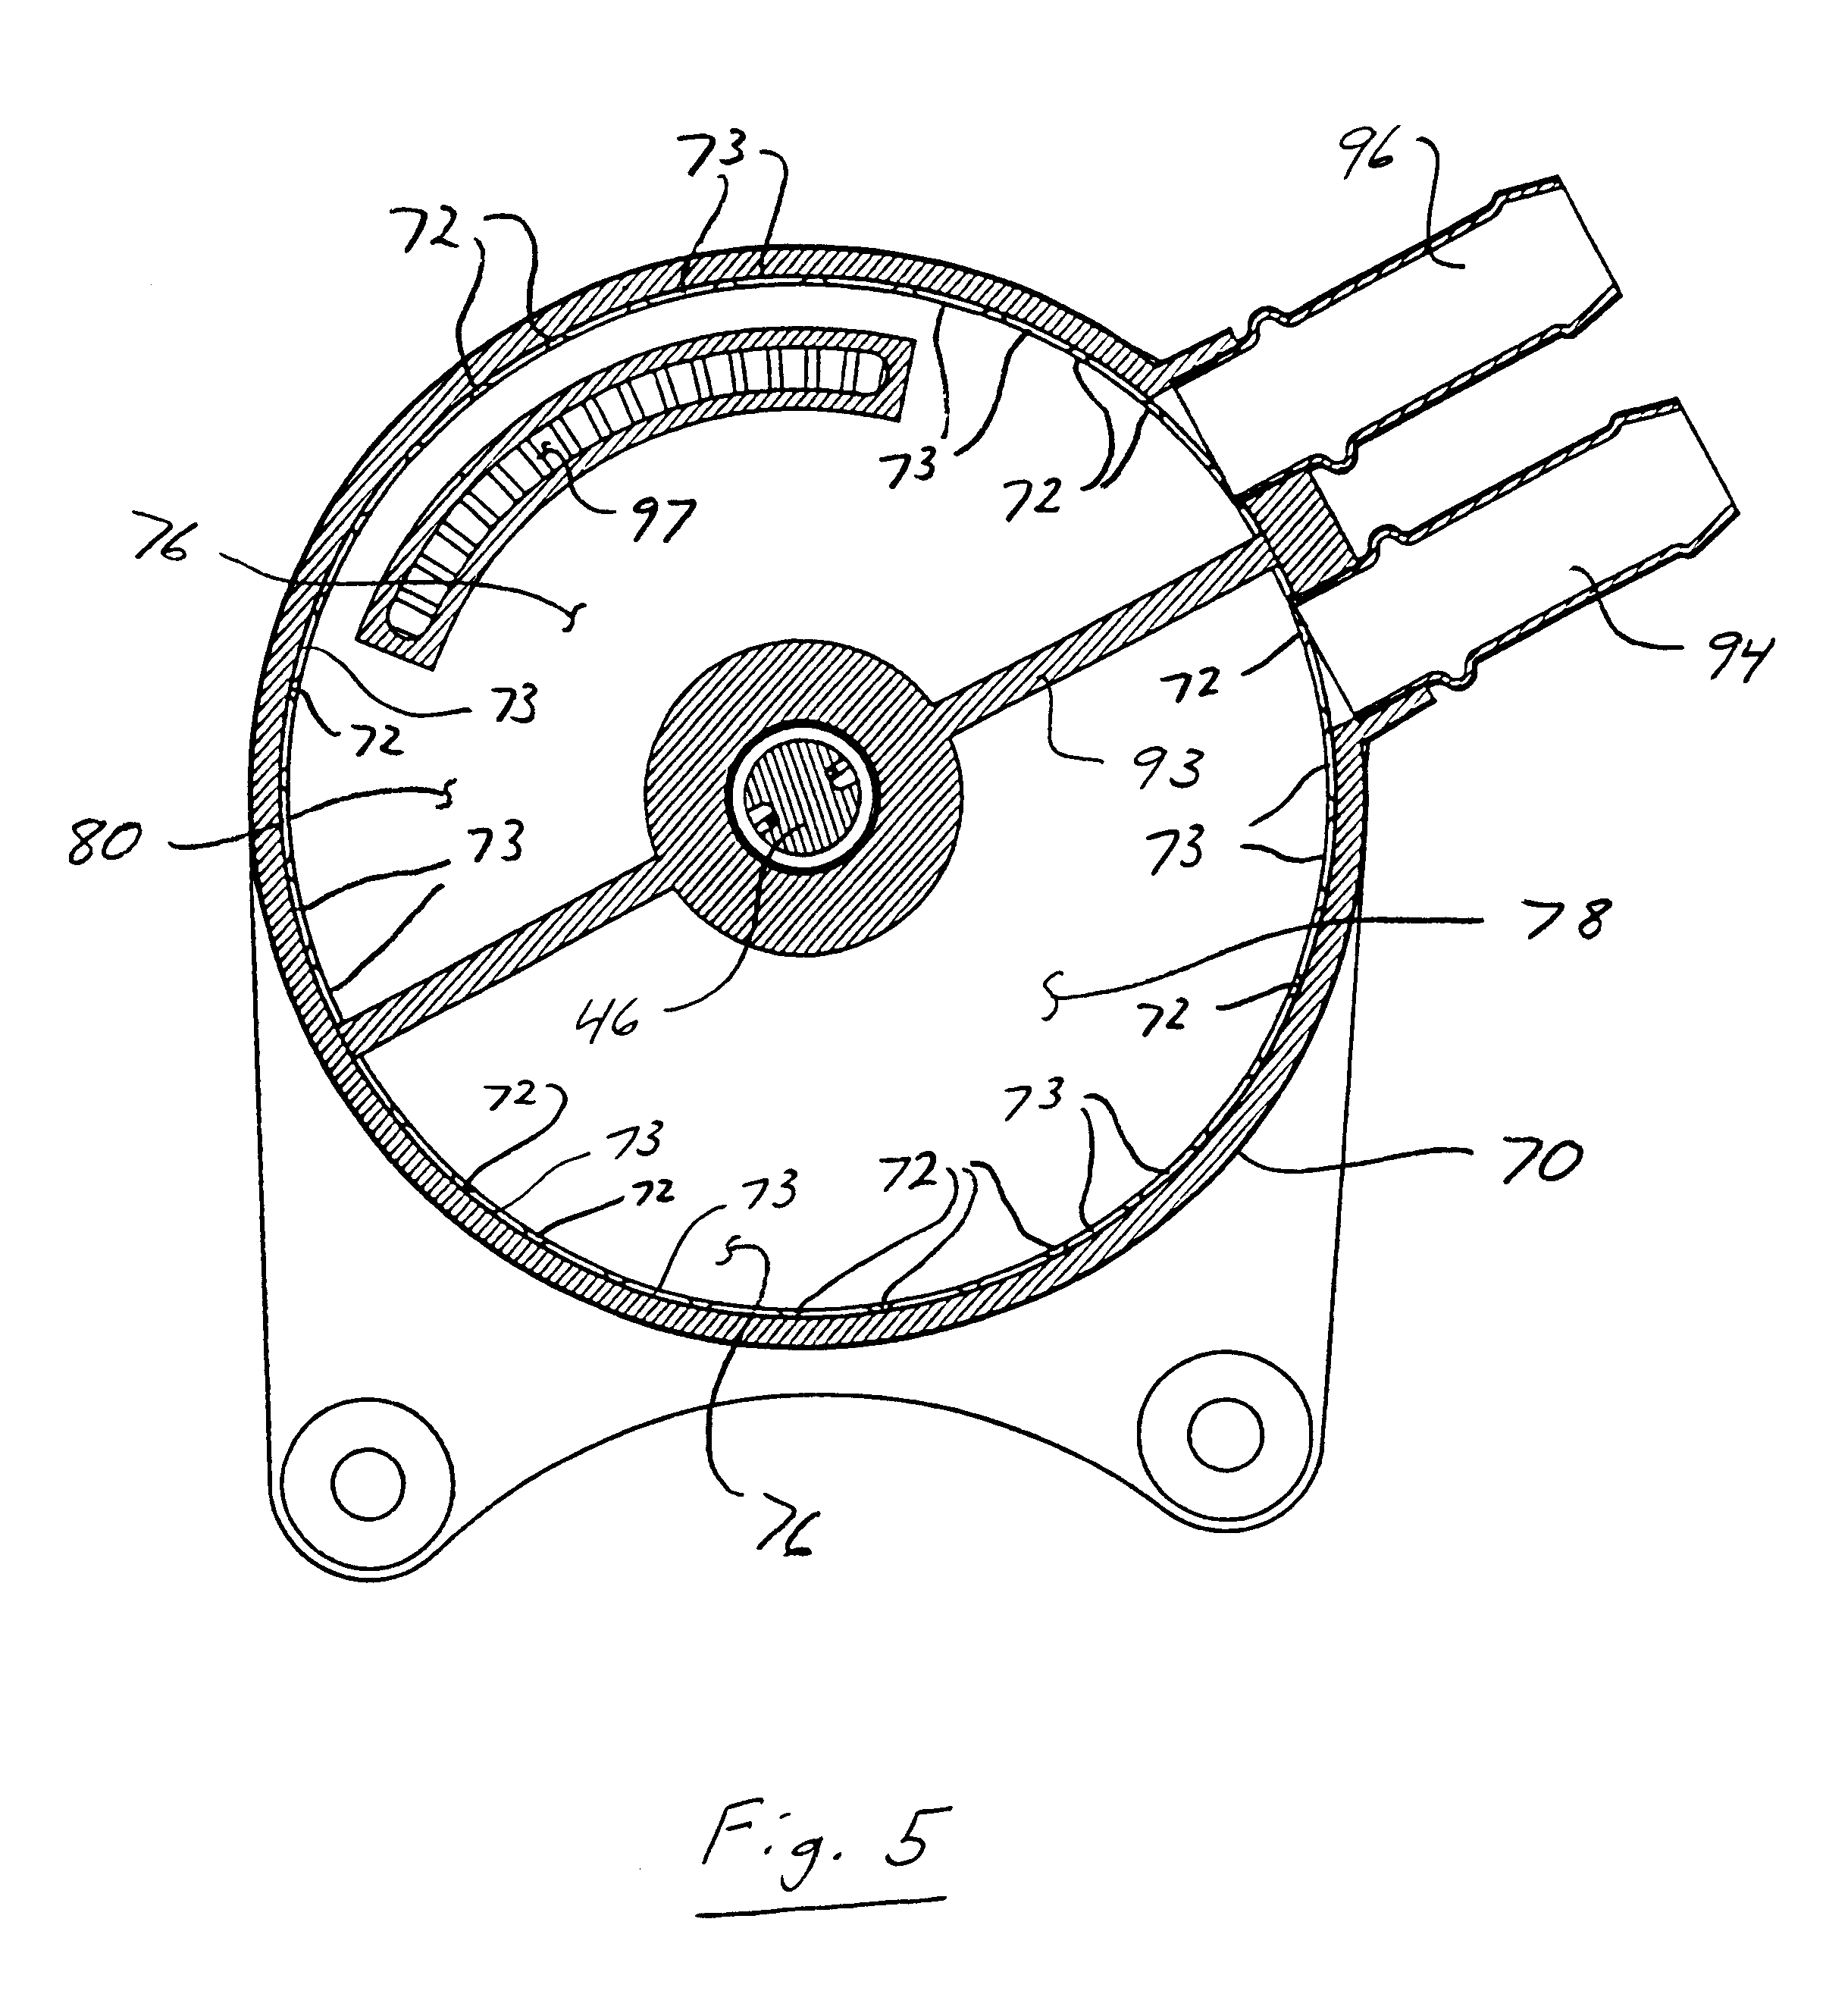 Patent Us6617715 Liquid Cooled Alternator Having Finned Stator Fig Back Of Typical Illustrating Wiring Drawing